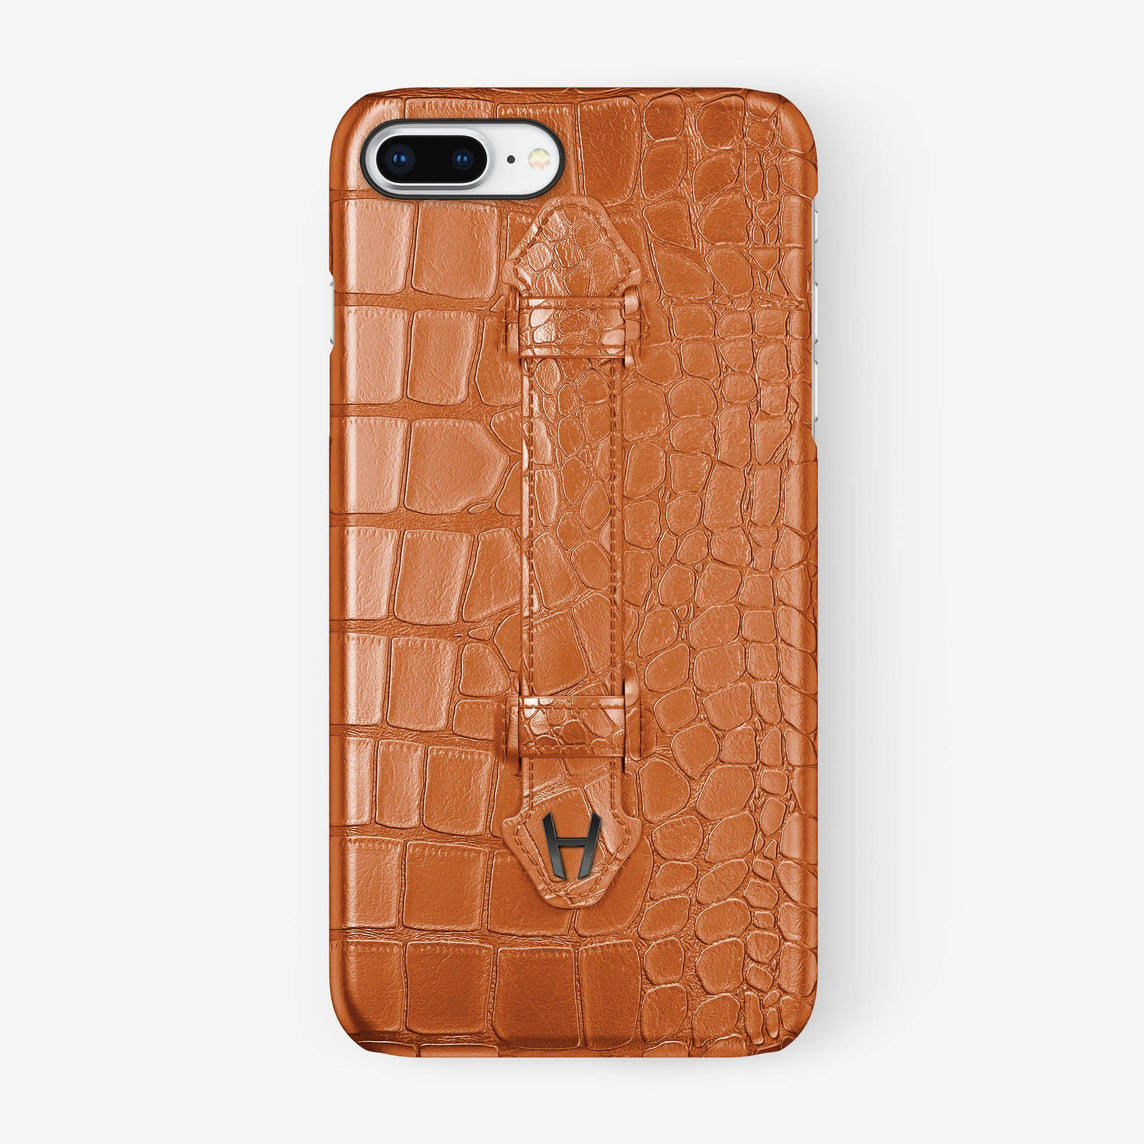 Orange Alligator iPhone Finger Case for iPhone 7/8 Plus finishing black - Hadoro Luxury Cases